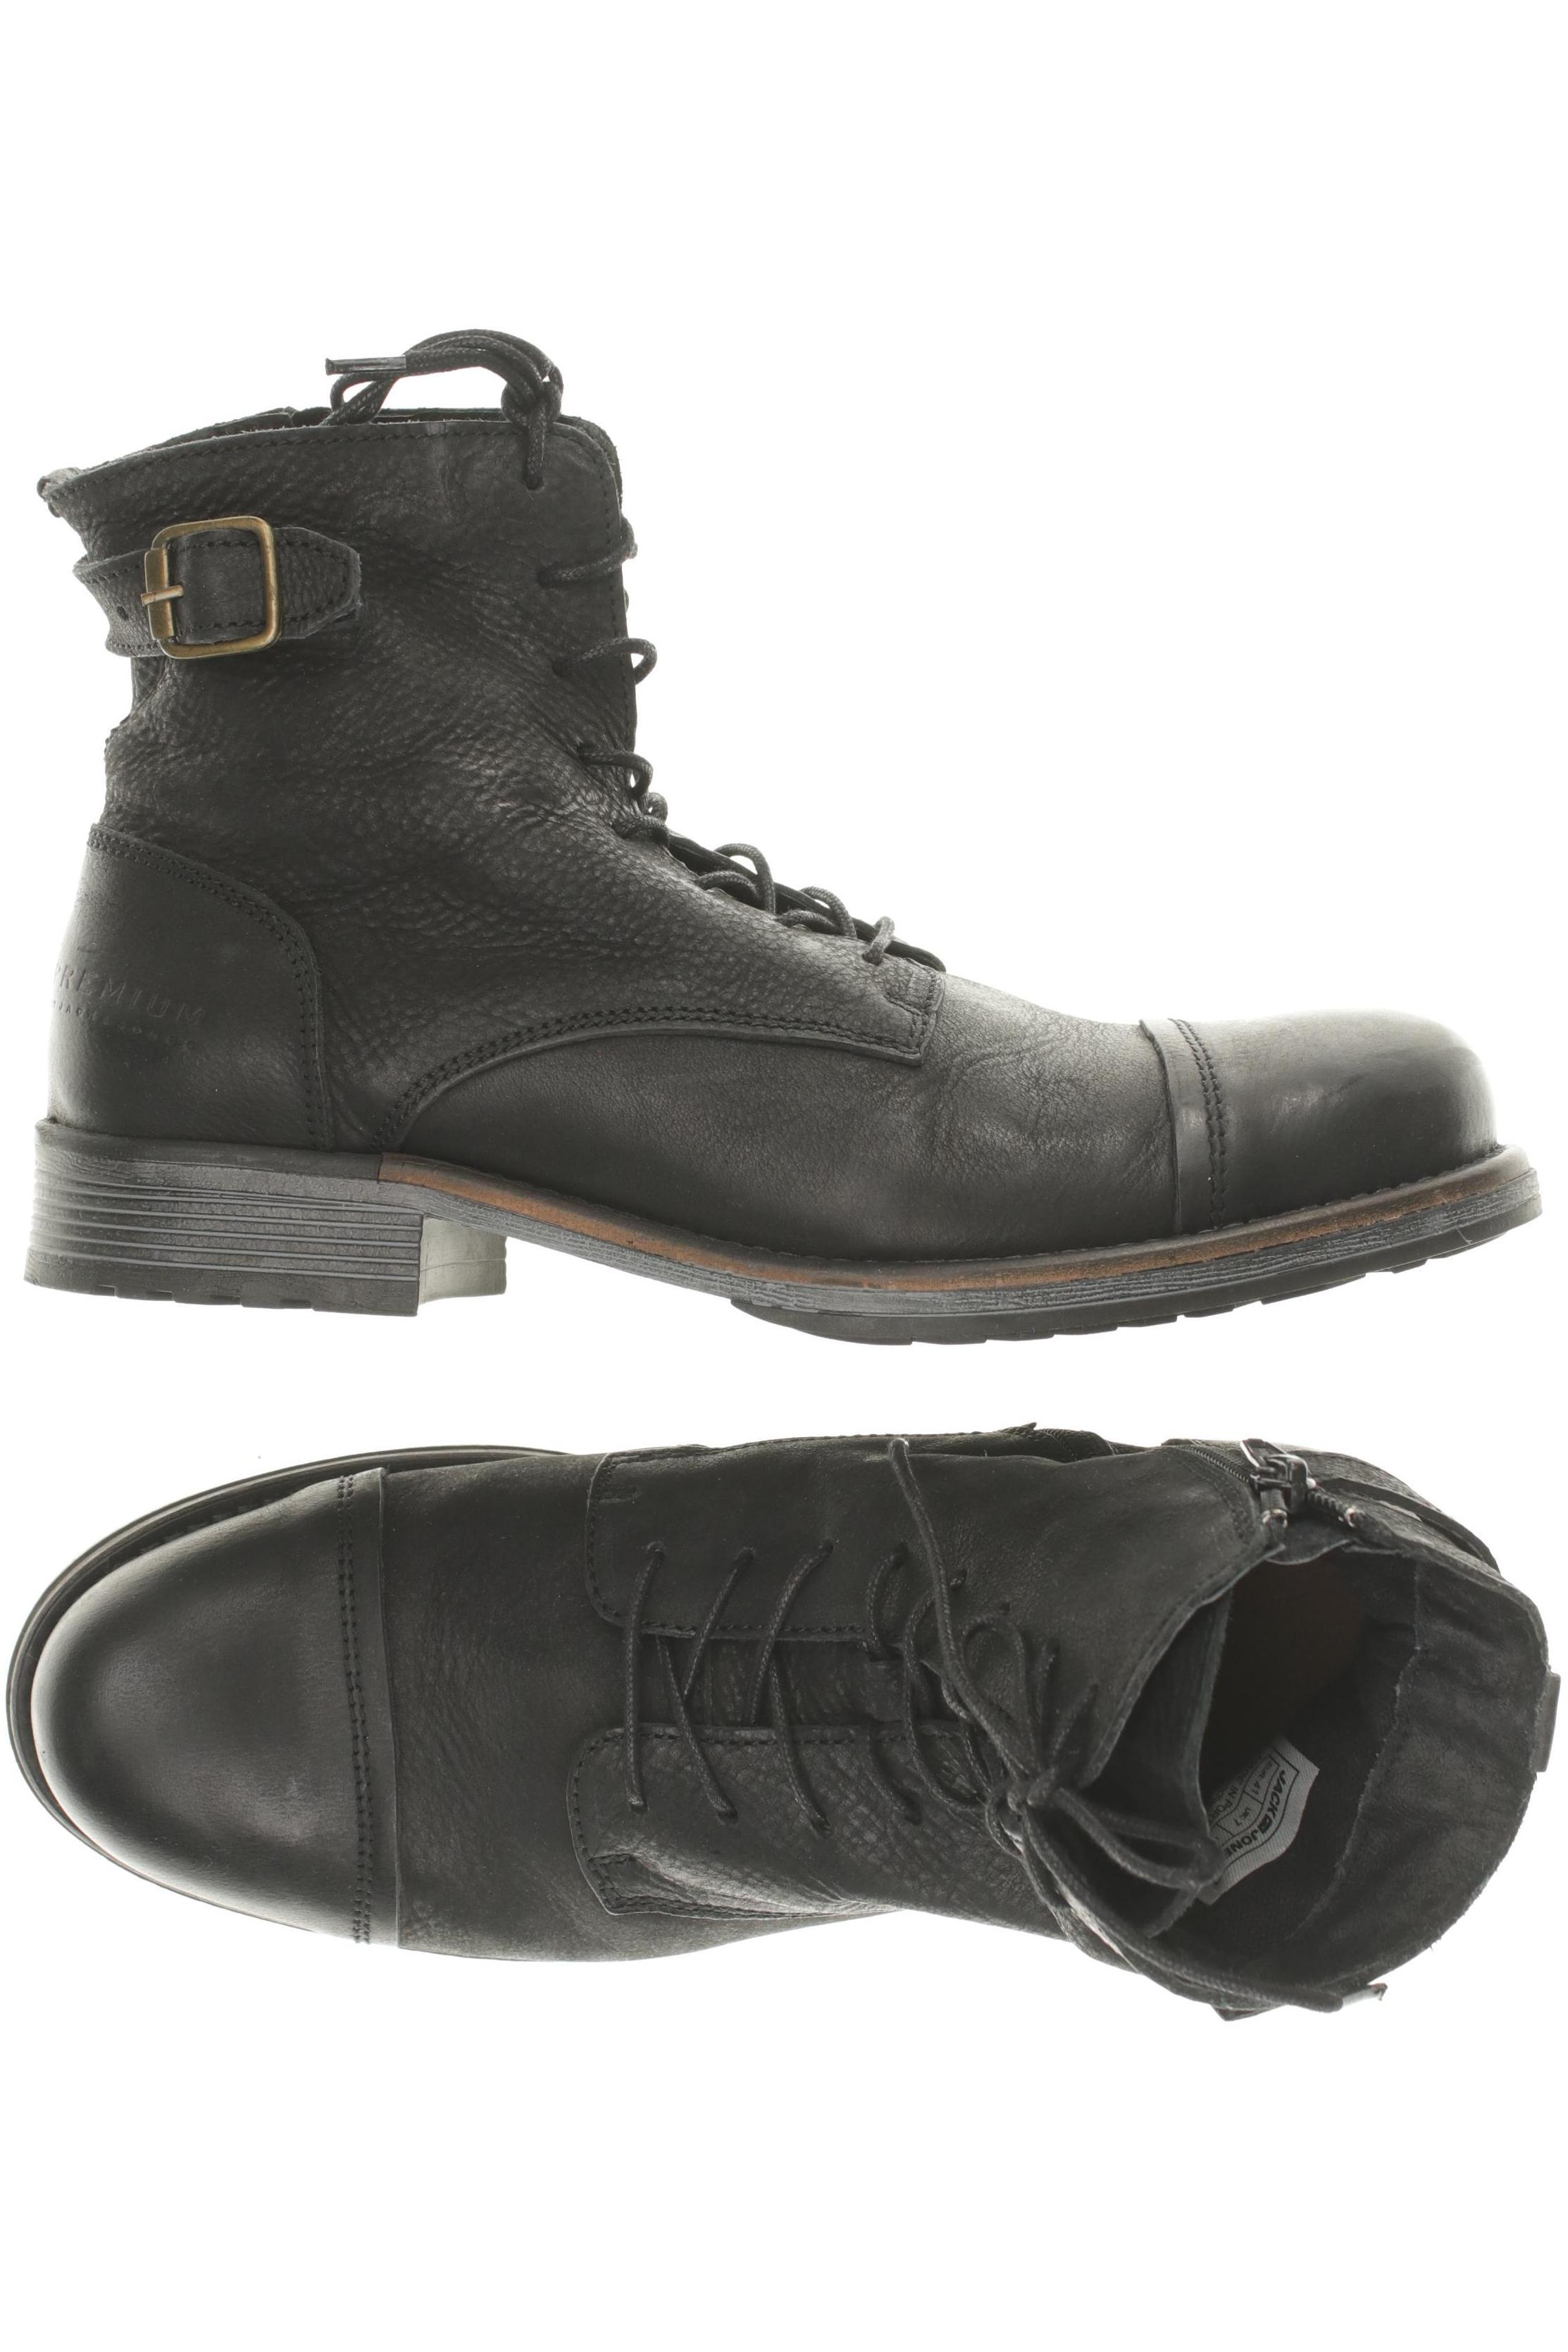 JACK & JONES Herren Stiefel DE 41 Second Hand kaufen